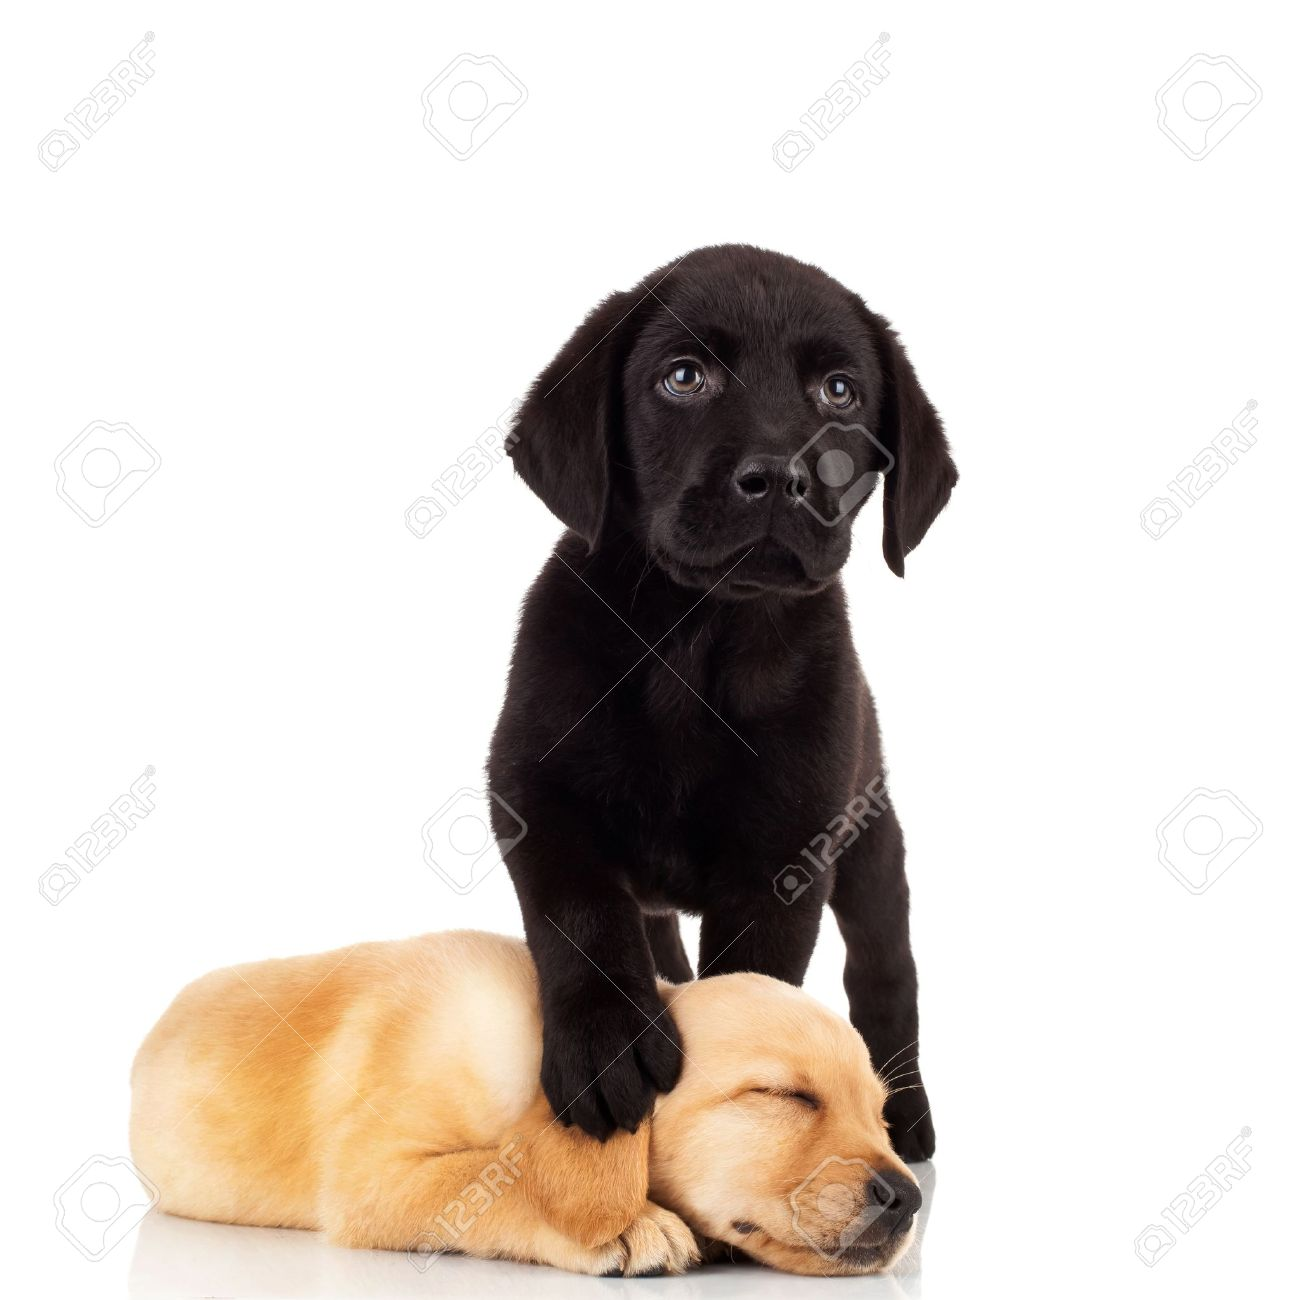 Cool Black Chubby Adorable Dog - 10092200-cute-labrador-puppies-black-labrador-stepping-on-its-little-sister-s-head-while-sleeping-Stock-Photo  You Should Have_764431  .jpg